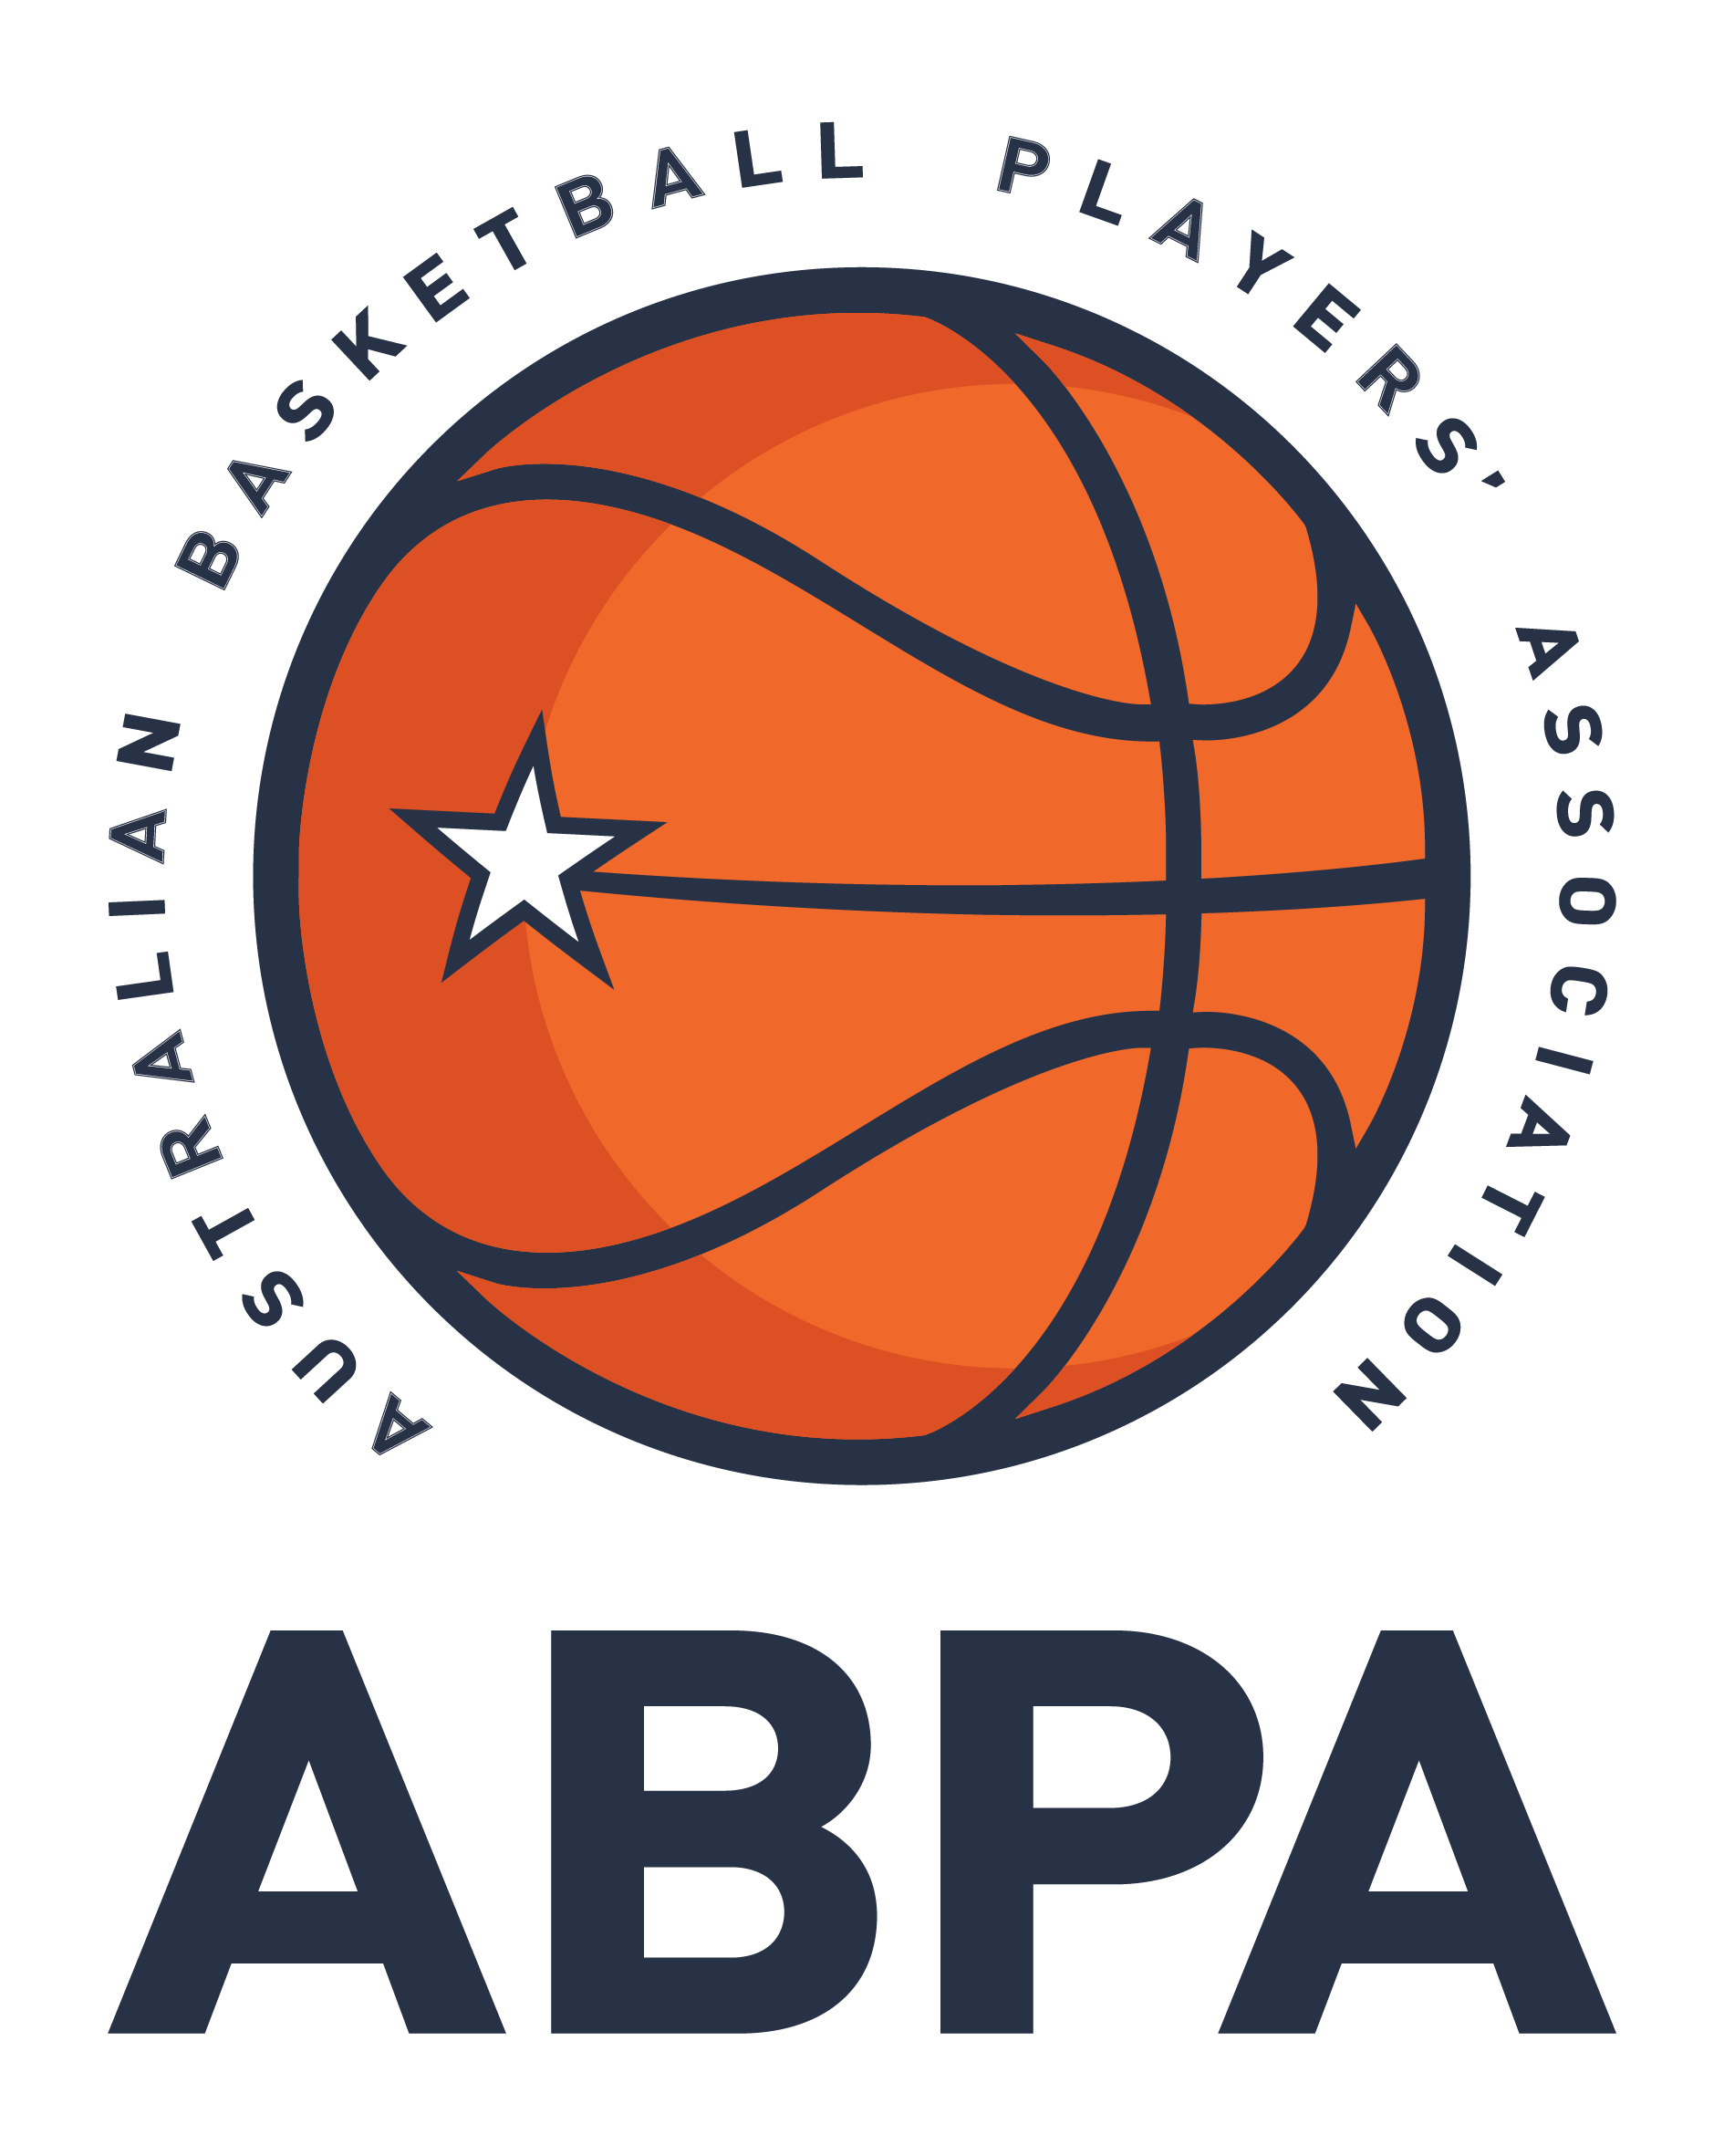 Australian Basketballers' Association